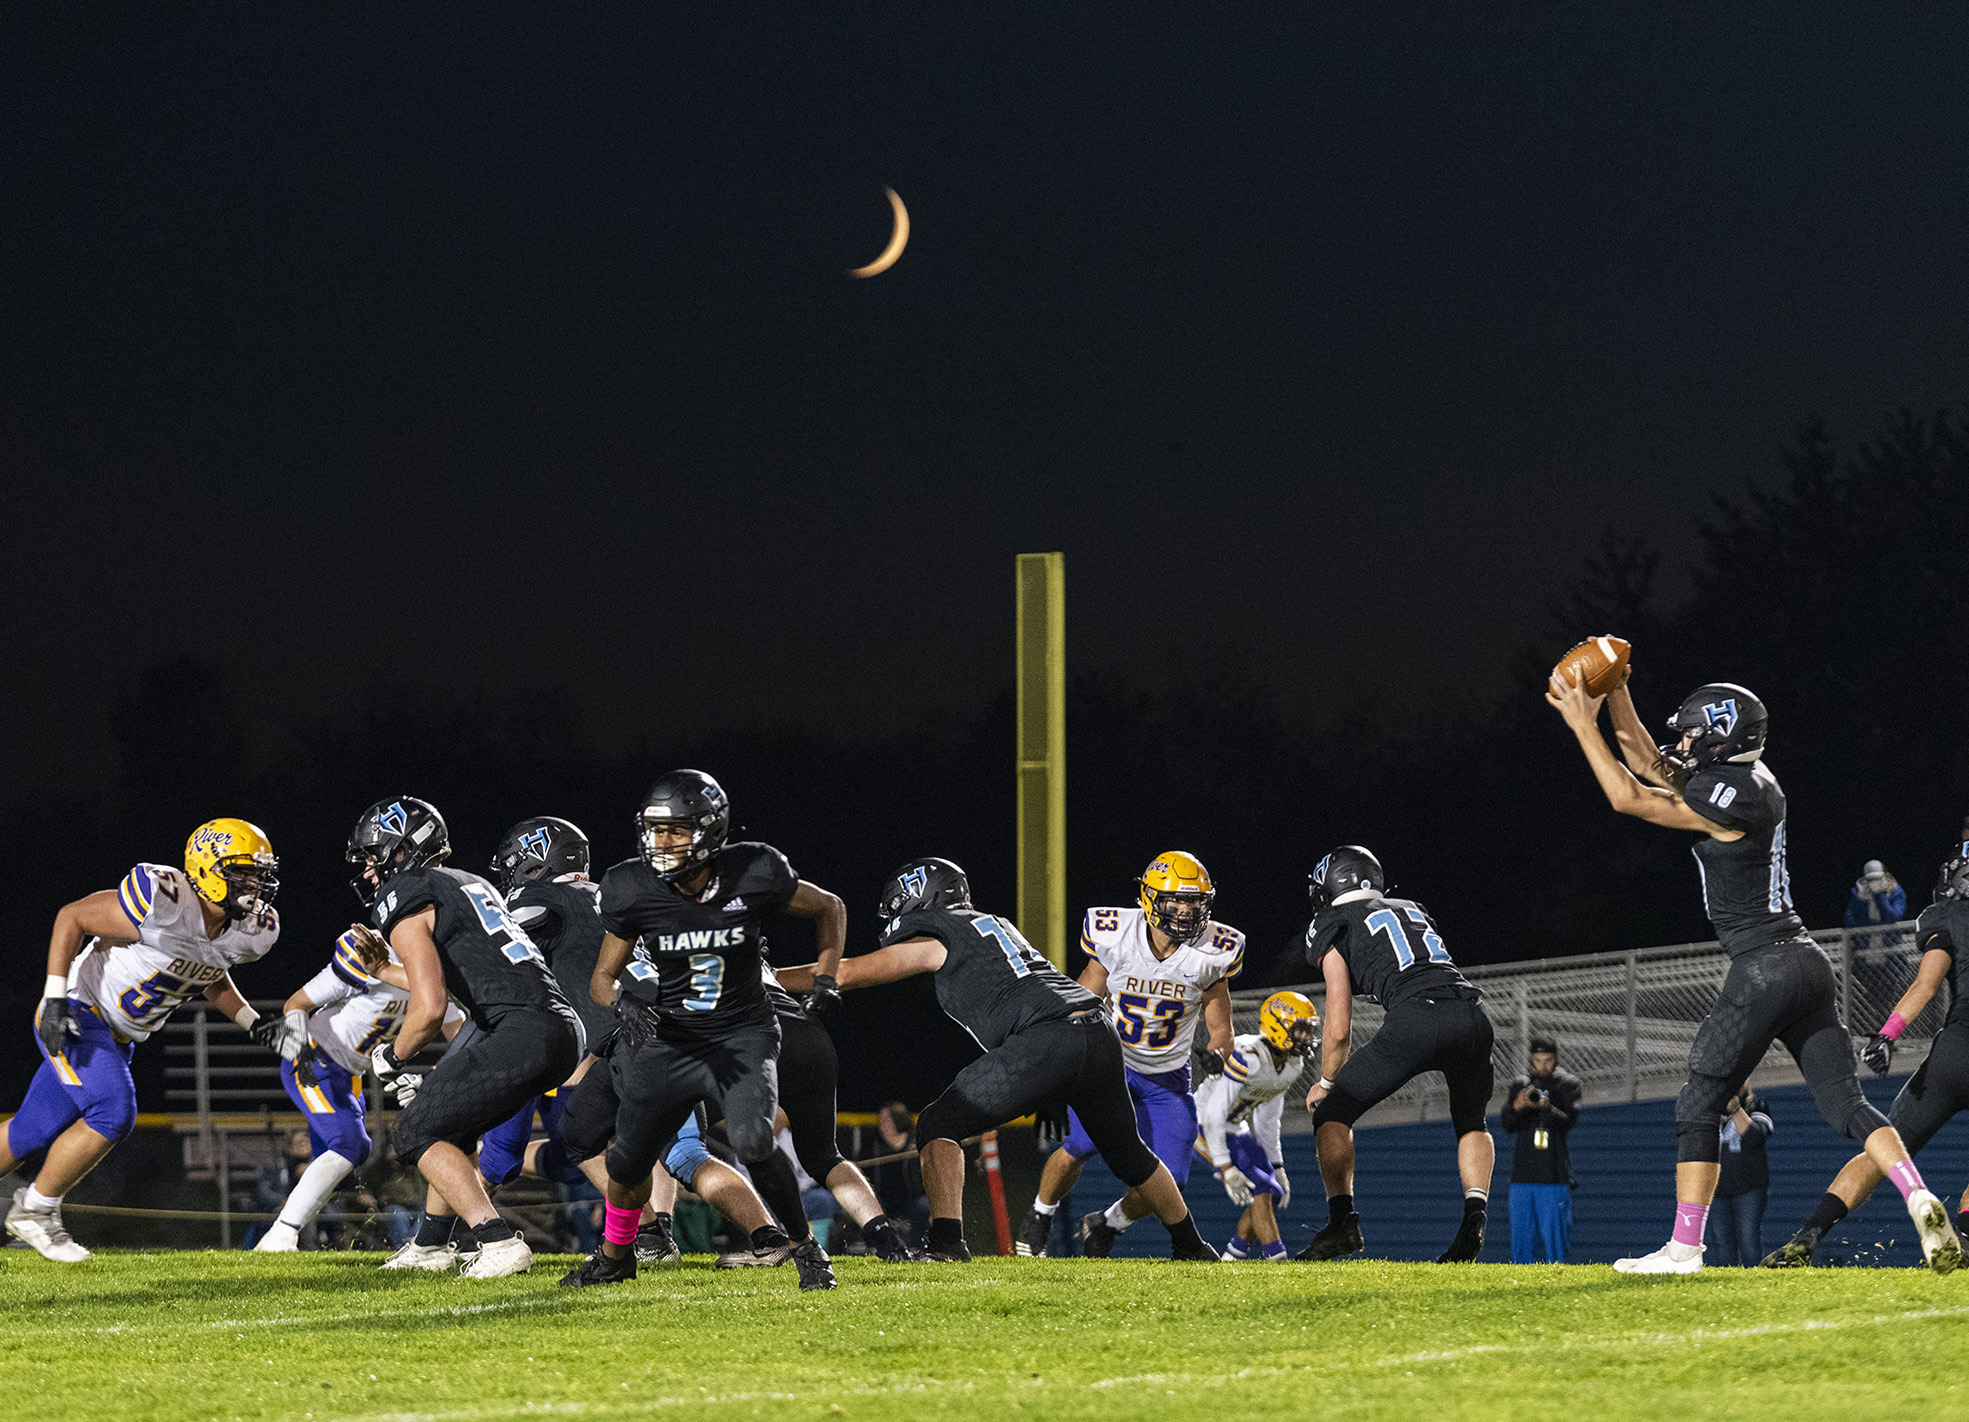 A waxing crescent moon hangs above the Hockinson High School football field Friday, Oct. 8, 2021, during the Hawks' 31-6 win against Columbia River.